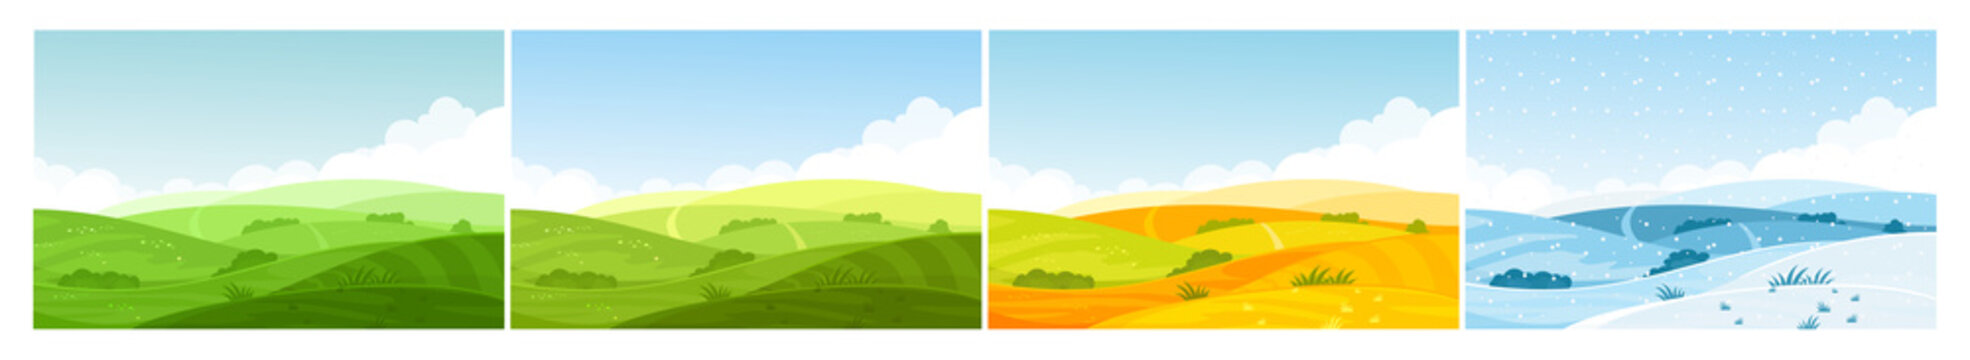 Nature field landscape in four seasons. Cartoon summer spring autumn winter scenes with green grassland meadow, blue snow hills, yellow wild fields, panorama scenery background.